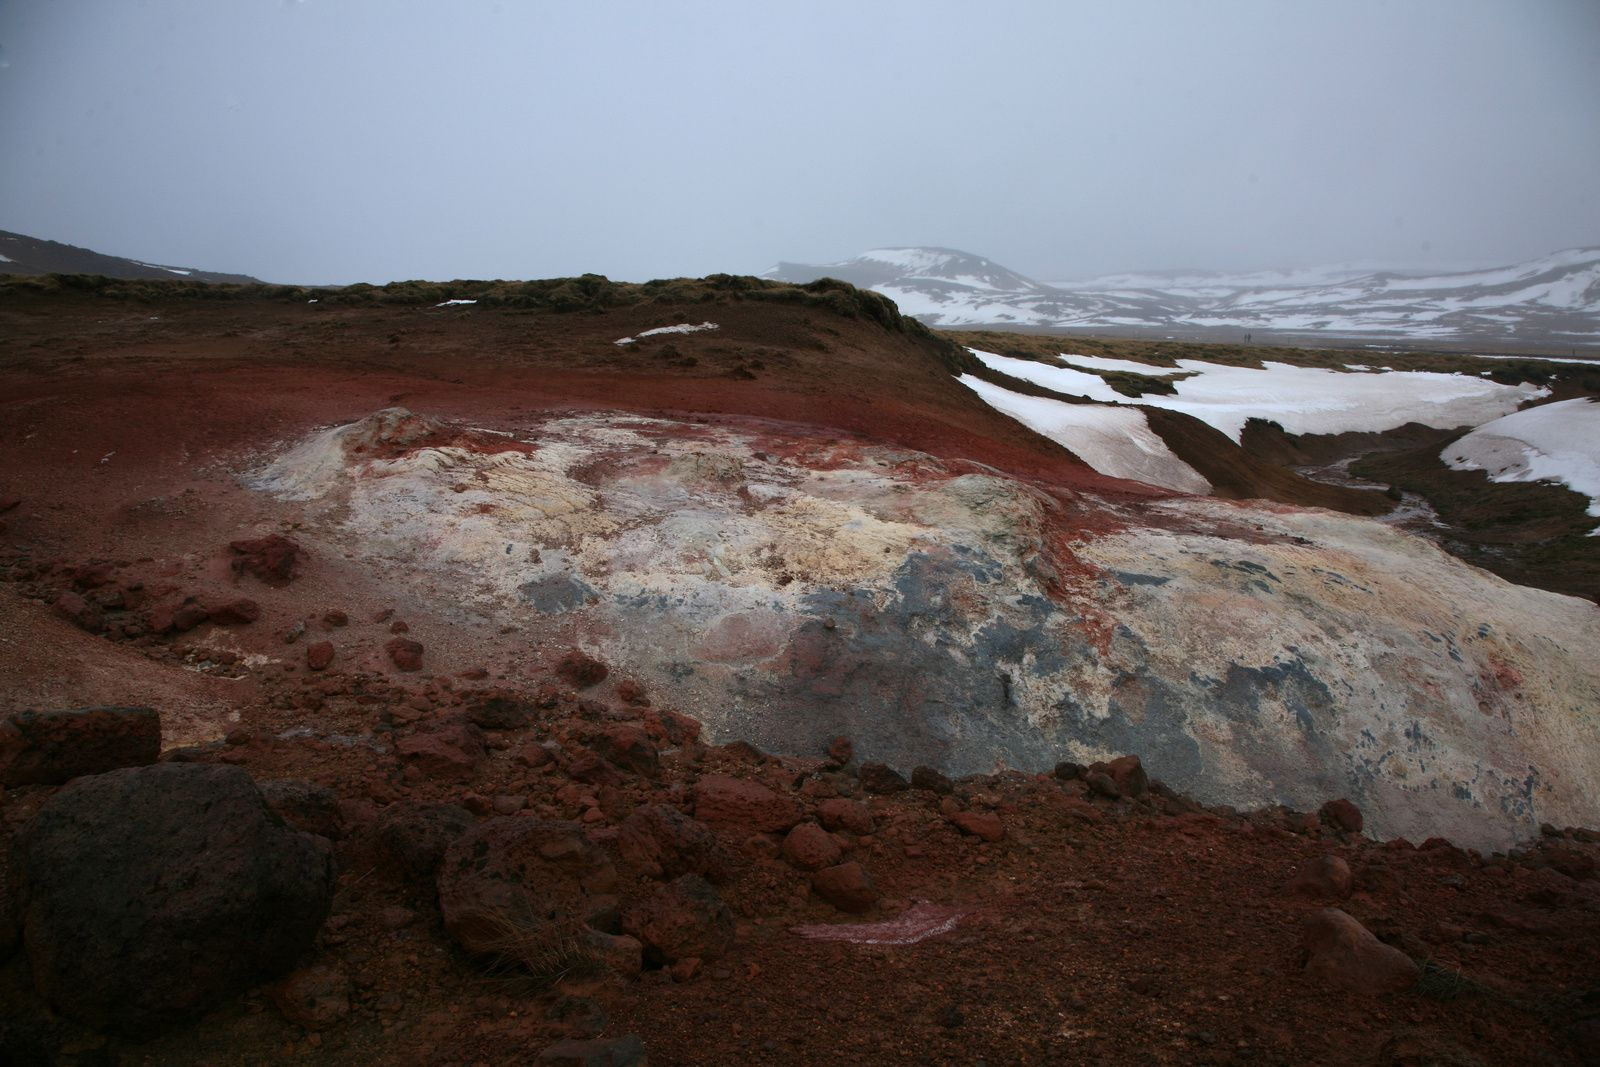 The geothermal field Krísuvík-Seltun - tone agreements between weathered, oxidized rocks and the leaden sky - photo © 2015 Bernard Duyck